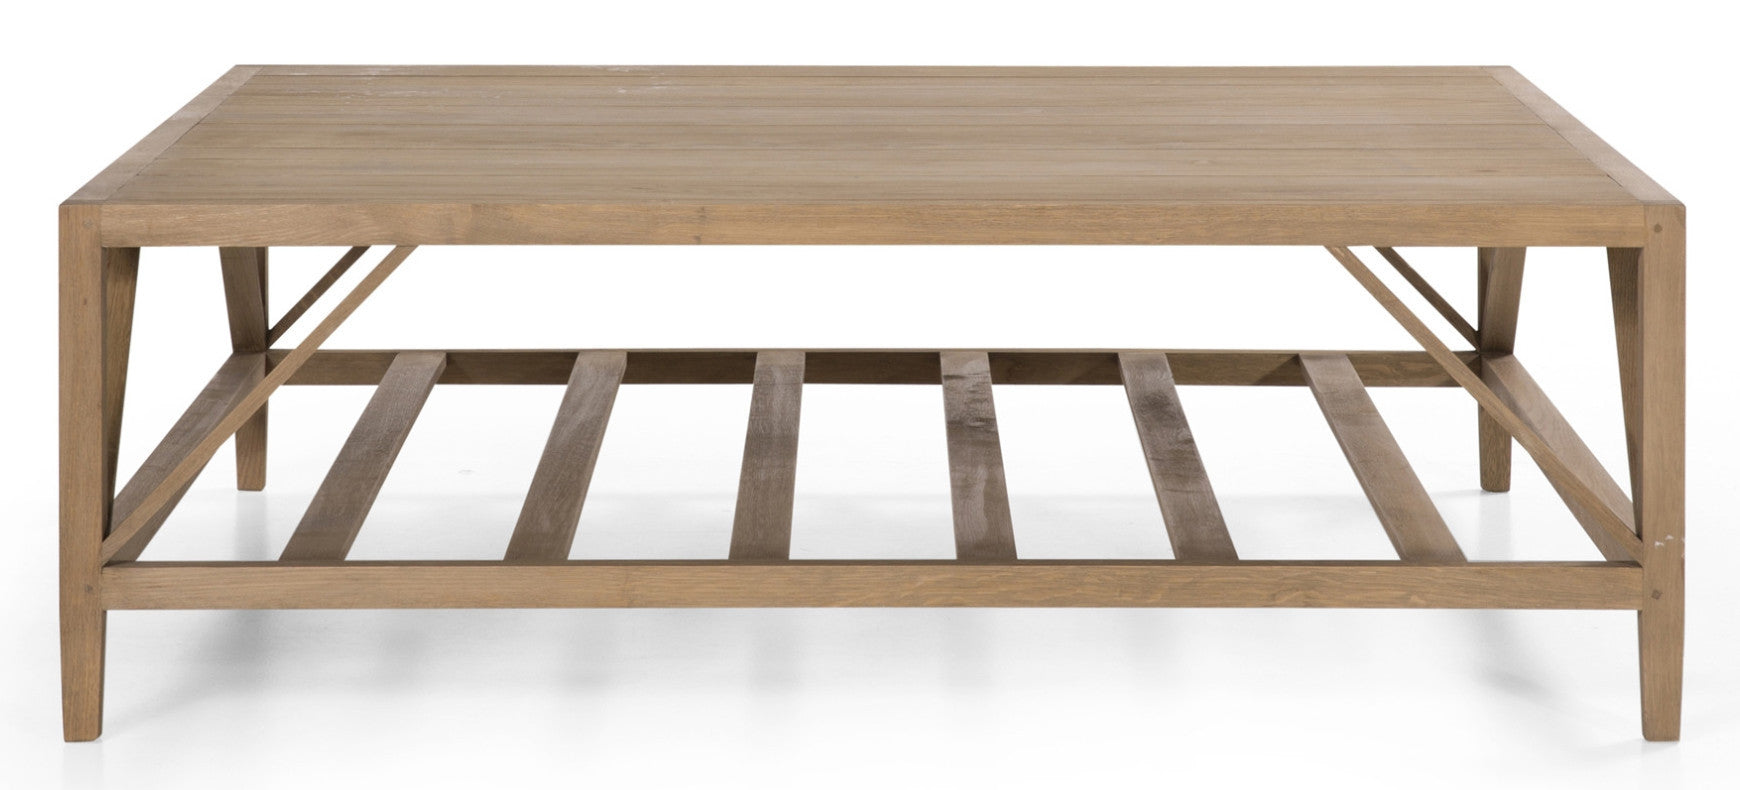 Coffee Table Architect Weathered Oak - C